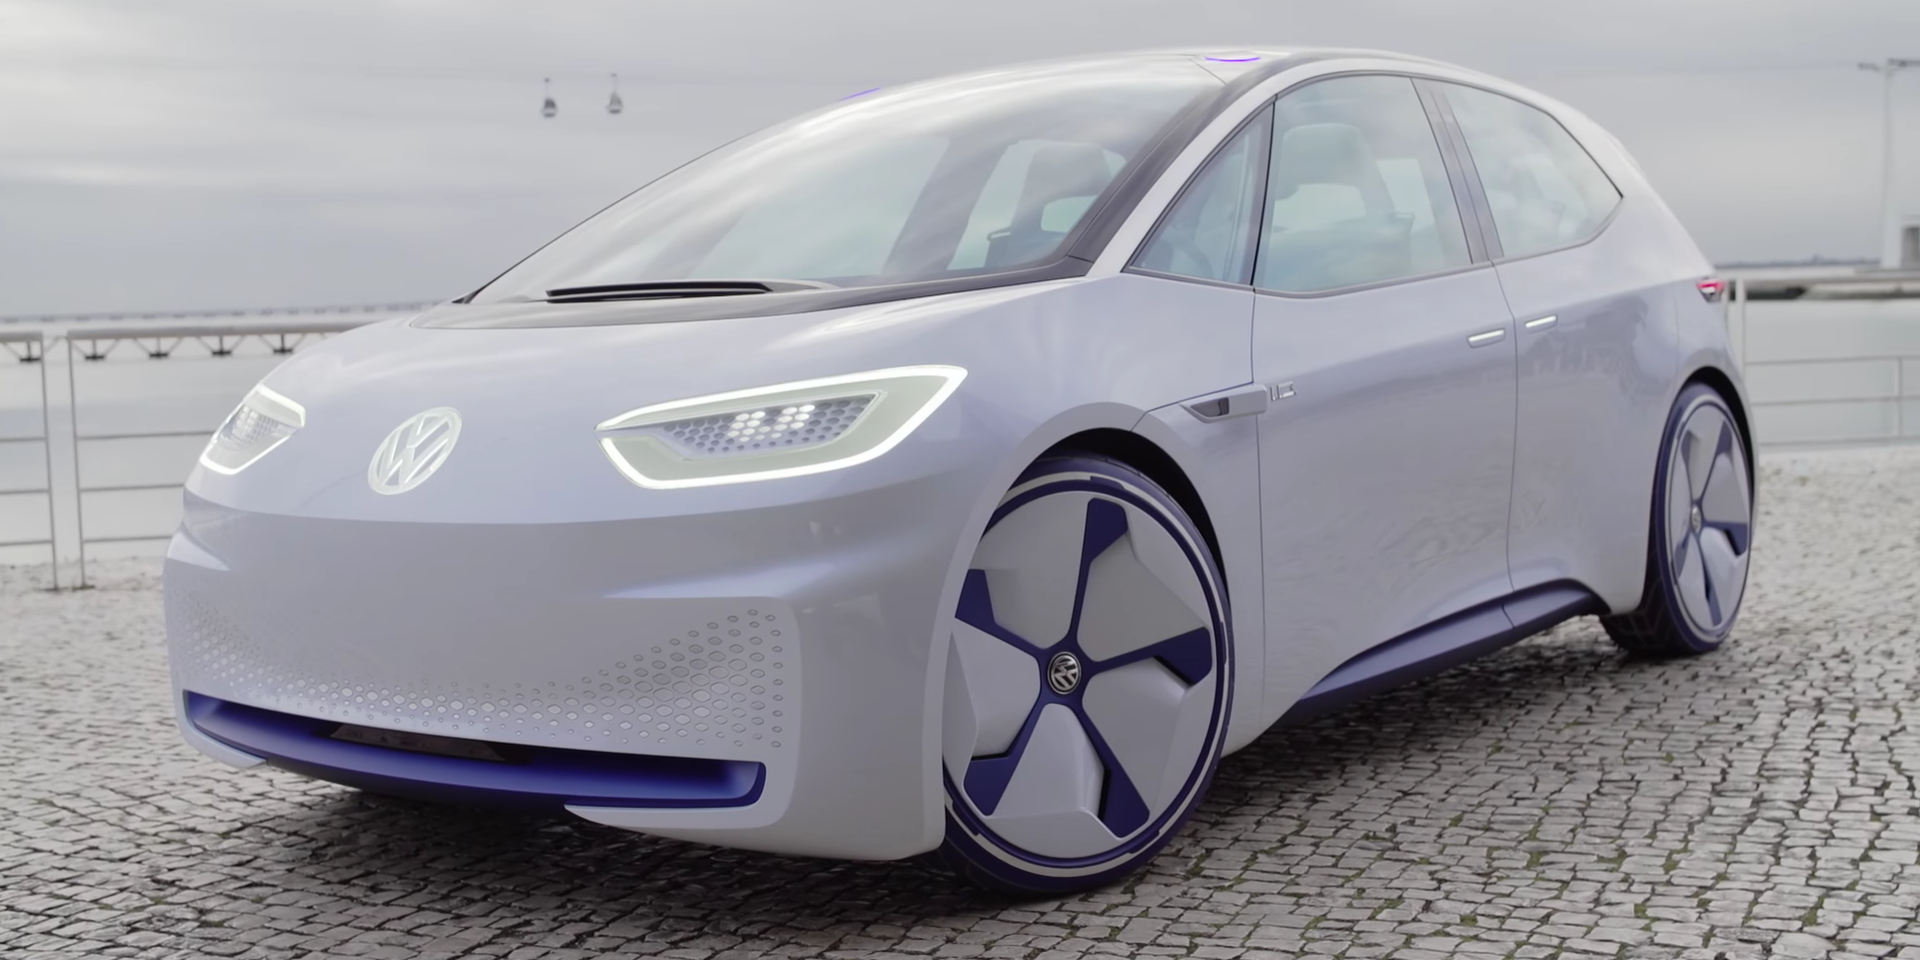 The Report Reiterates Range That Vw Originally Announced Which Was A Nedc Rated Of 400 To 600 Km 250 375 Miles Depending On Battery